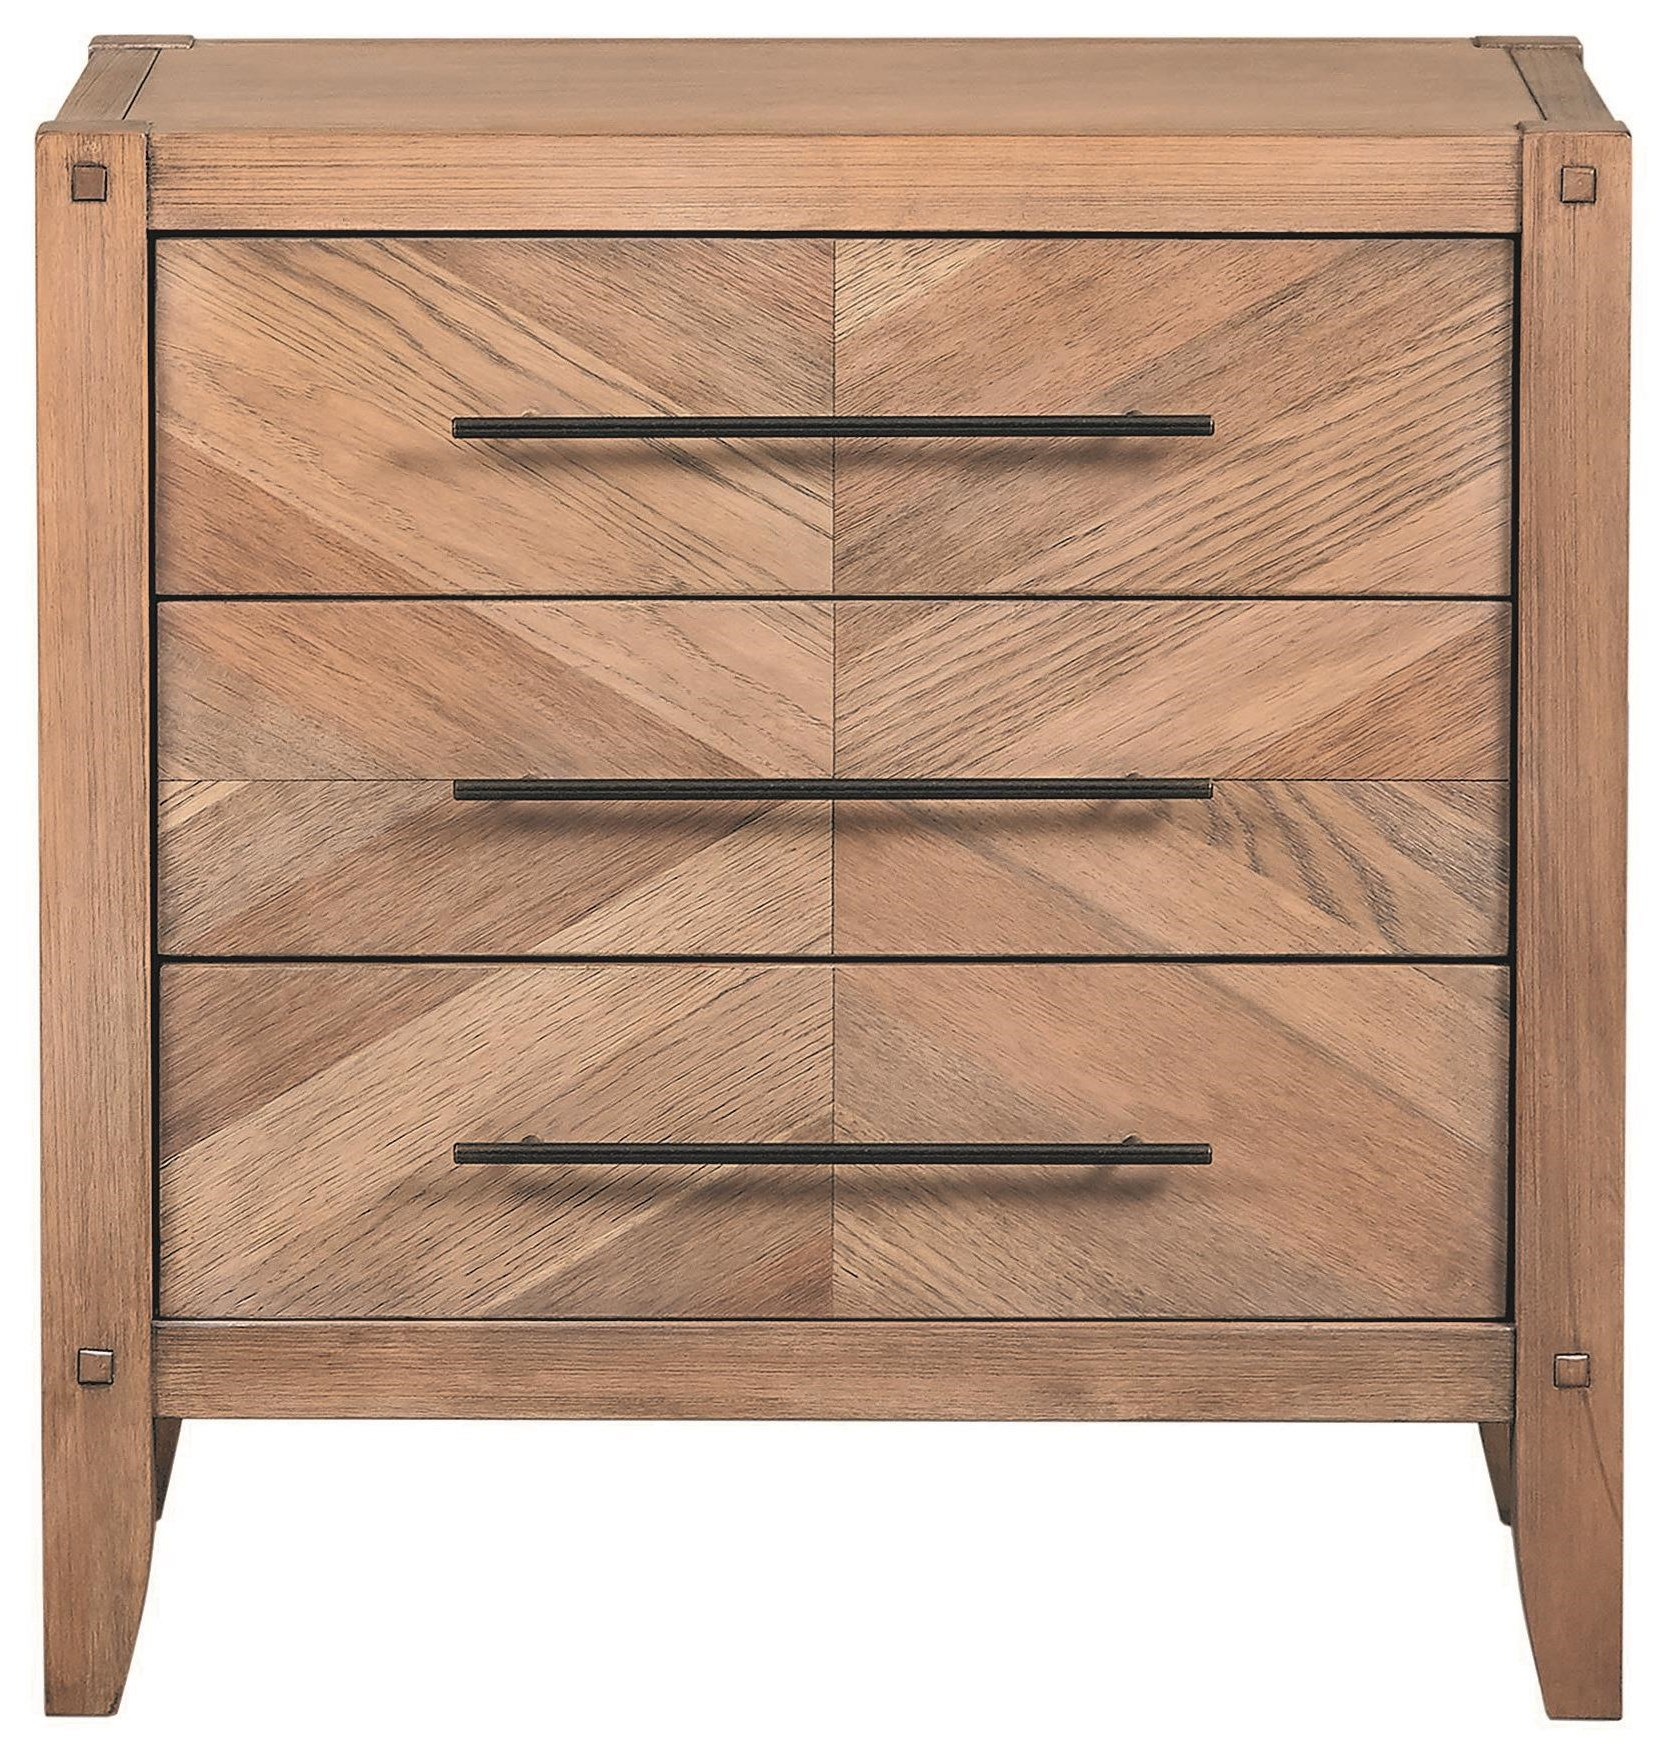 Scott Living Auburn 3 Drawer Nightstand - Item Number: 204612